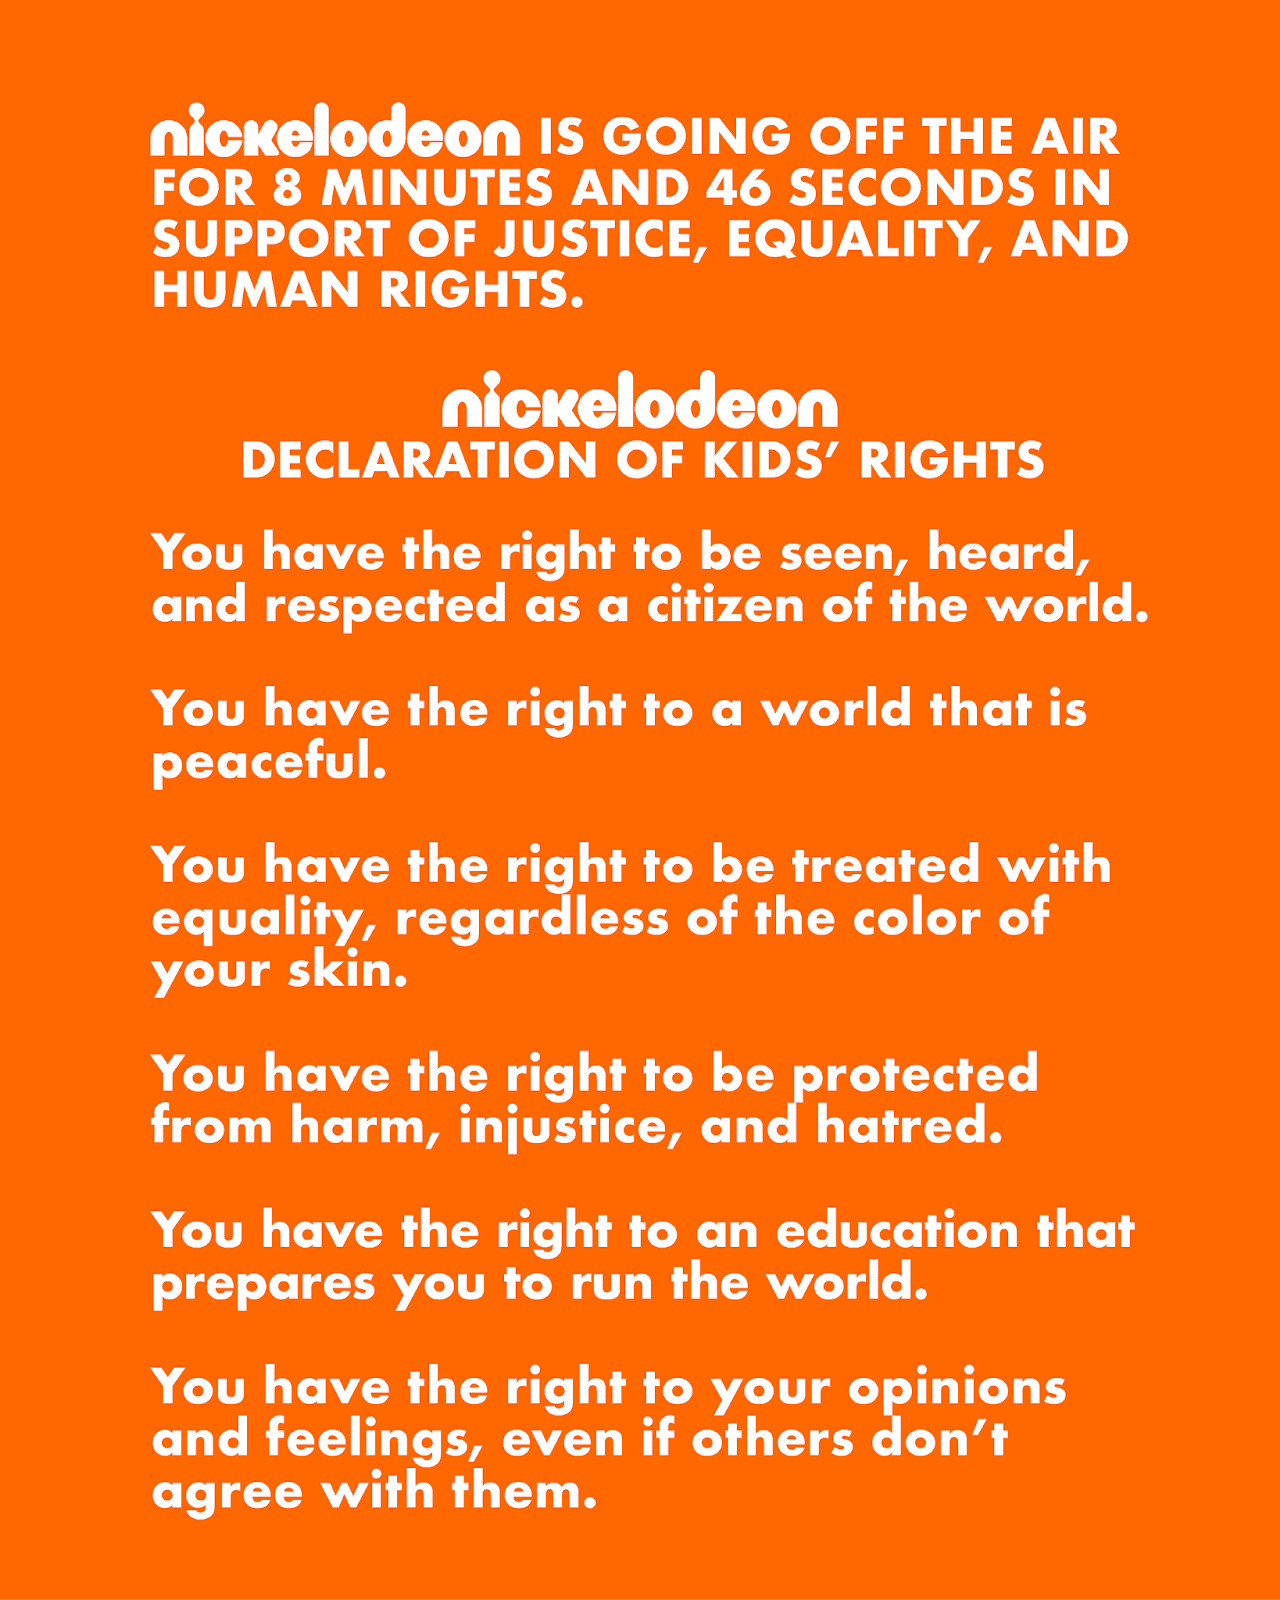 Nickelodeon Code : nickelodeon, NickALive!:, Nickelodeon, Off-Air, Minutes, Seconds, Support, Justice,, Equality,, Human, Rights